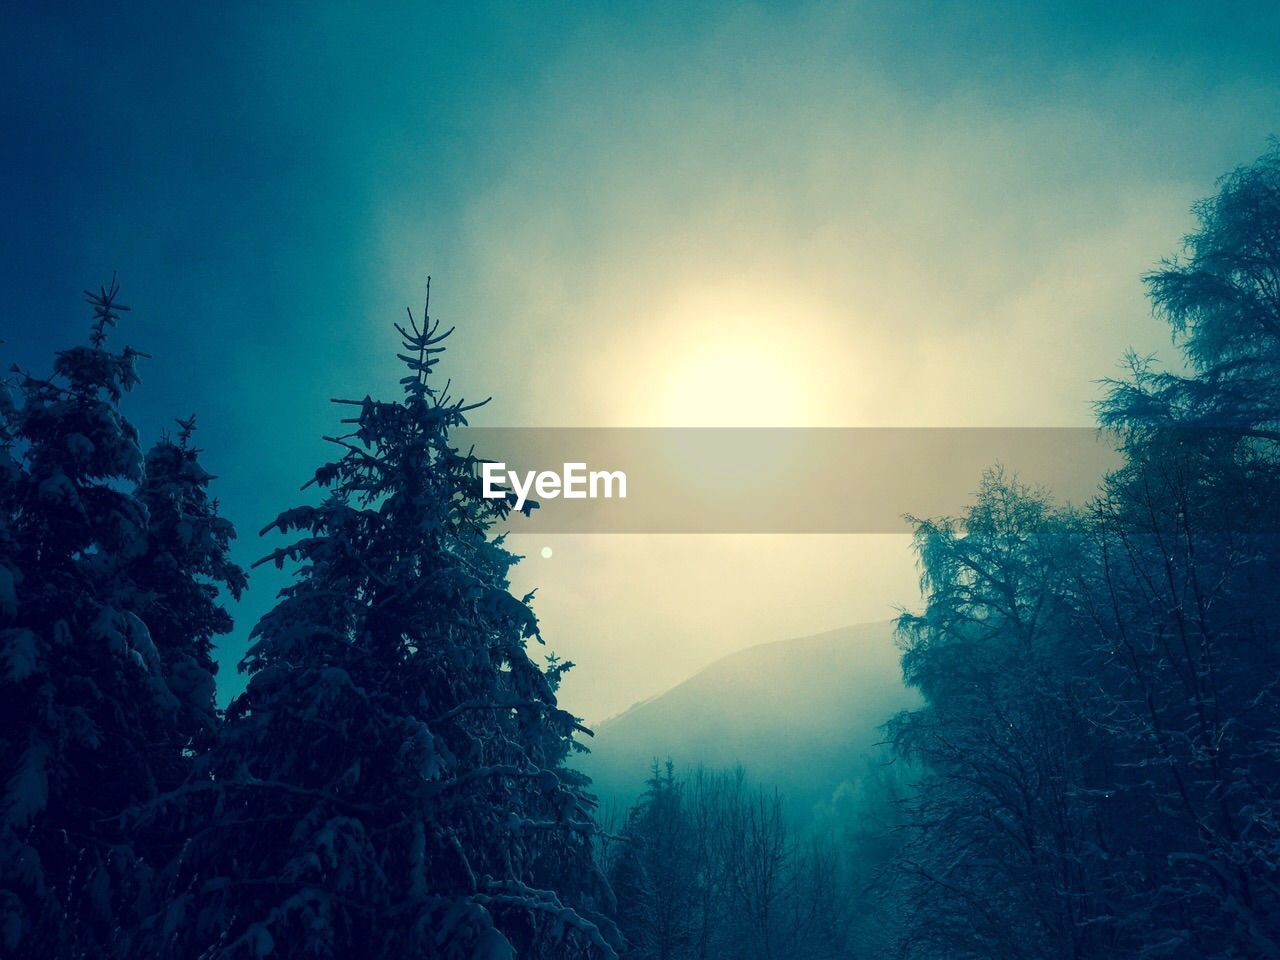 tree, sun, nature, beauty in nature, tranquility, no people, tranquil scene, outdoors, sunlight, silhouette, scenics, low angle view, day, sky, winter, mountain, growth, landscape, forest, cold temperature, branch